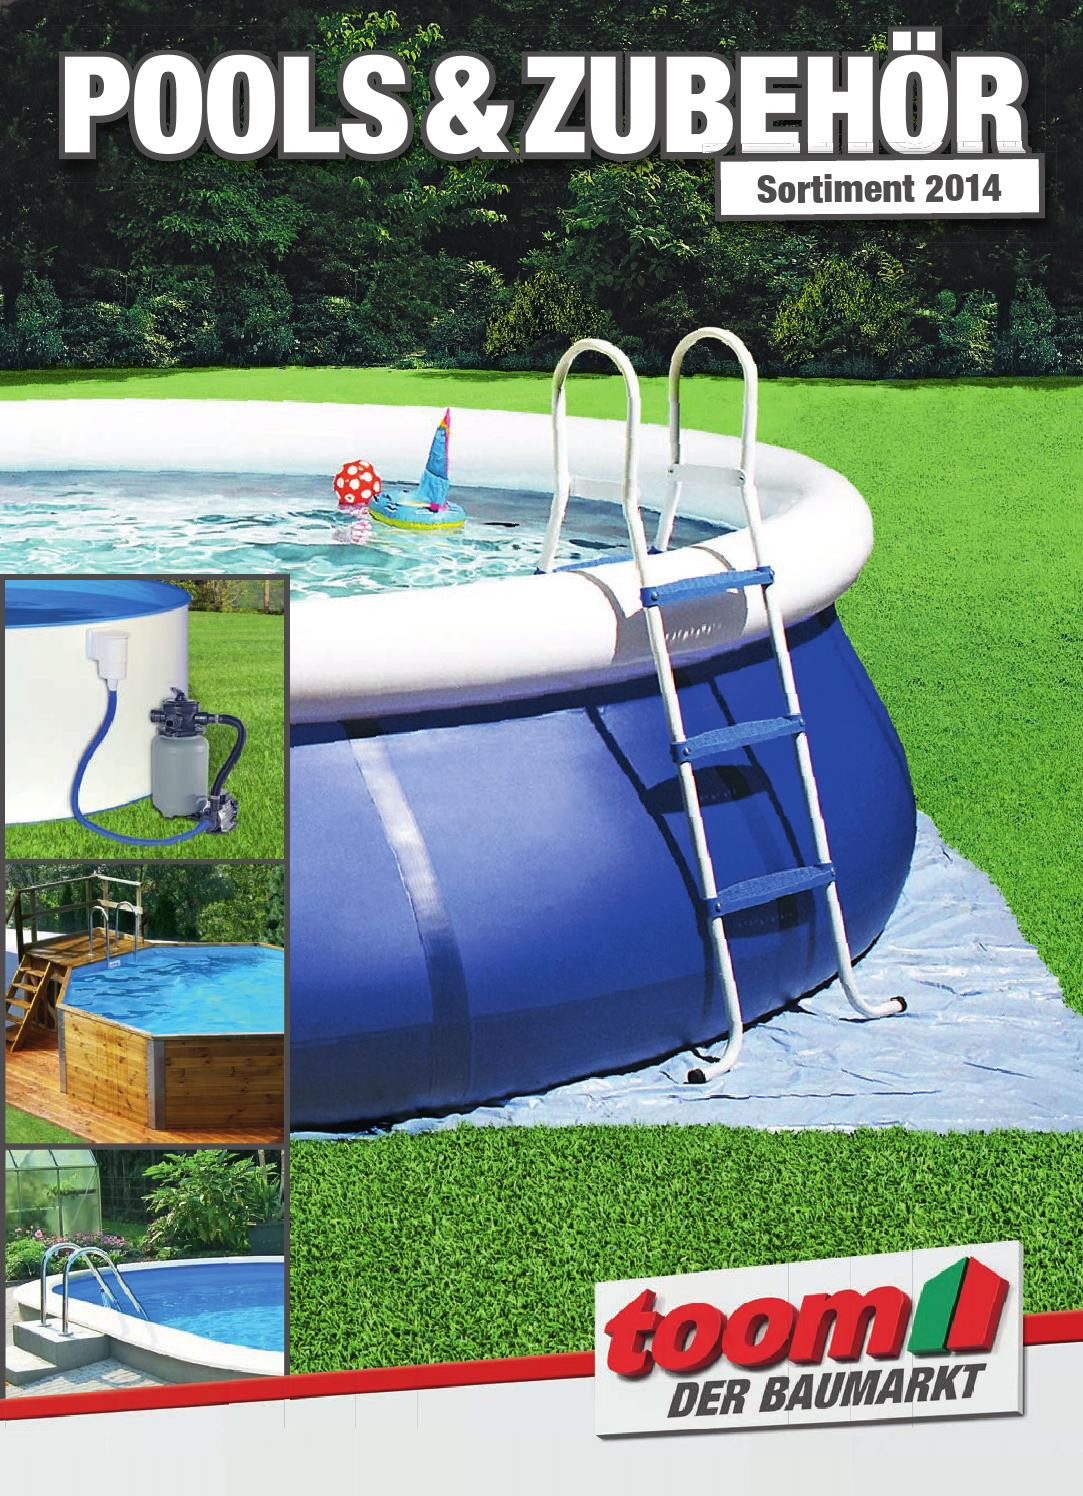 Abdeckplane Pool 200 X 150 Pool Katalog Pools Gesamt 120dpi By Catalogofree Issuu